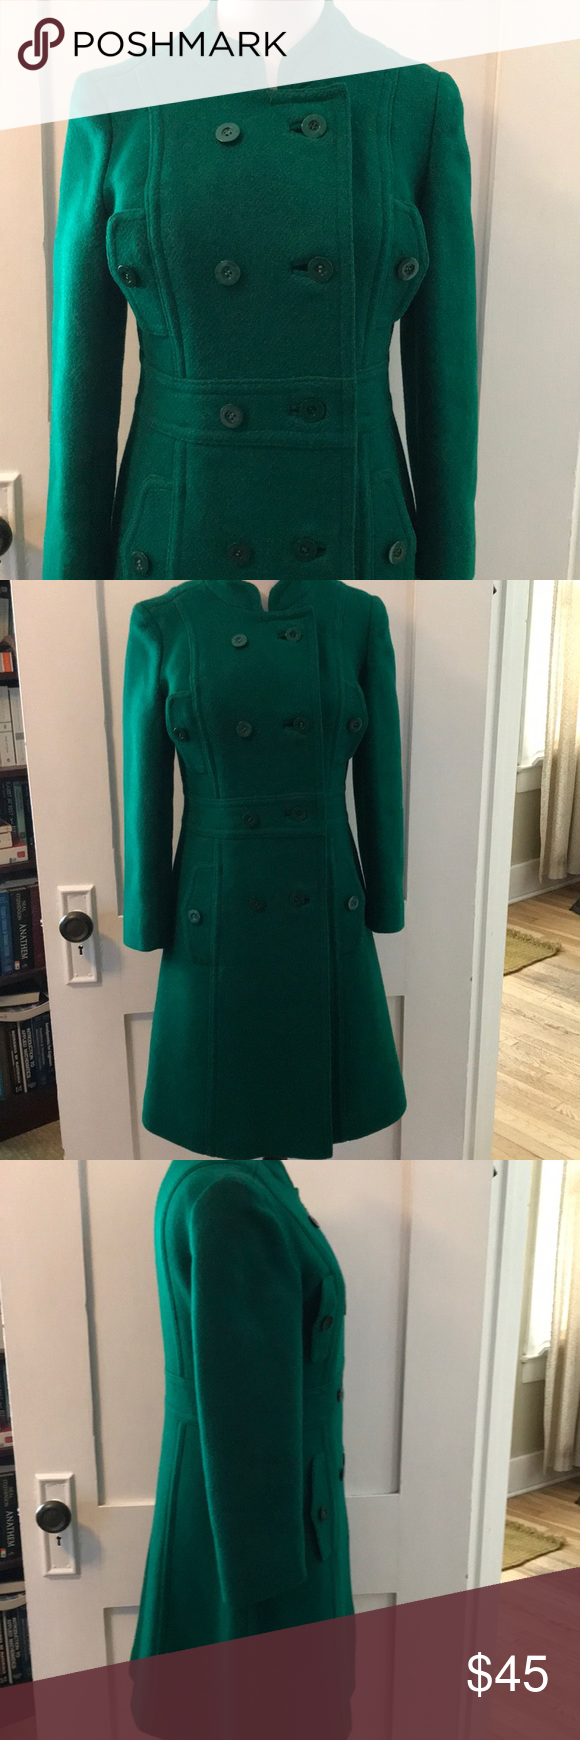 b635421c94 Vintage Saks Fifth Avenue green wool pea coat Beautiful wool pea coat.  Peacock green color. Lined. Pockets. Has all buttons. Does have a minor  moth eaten ...